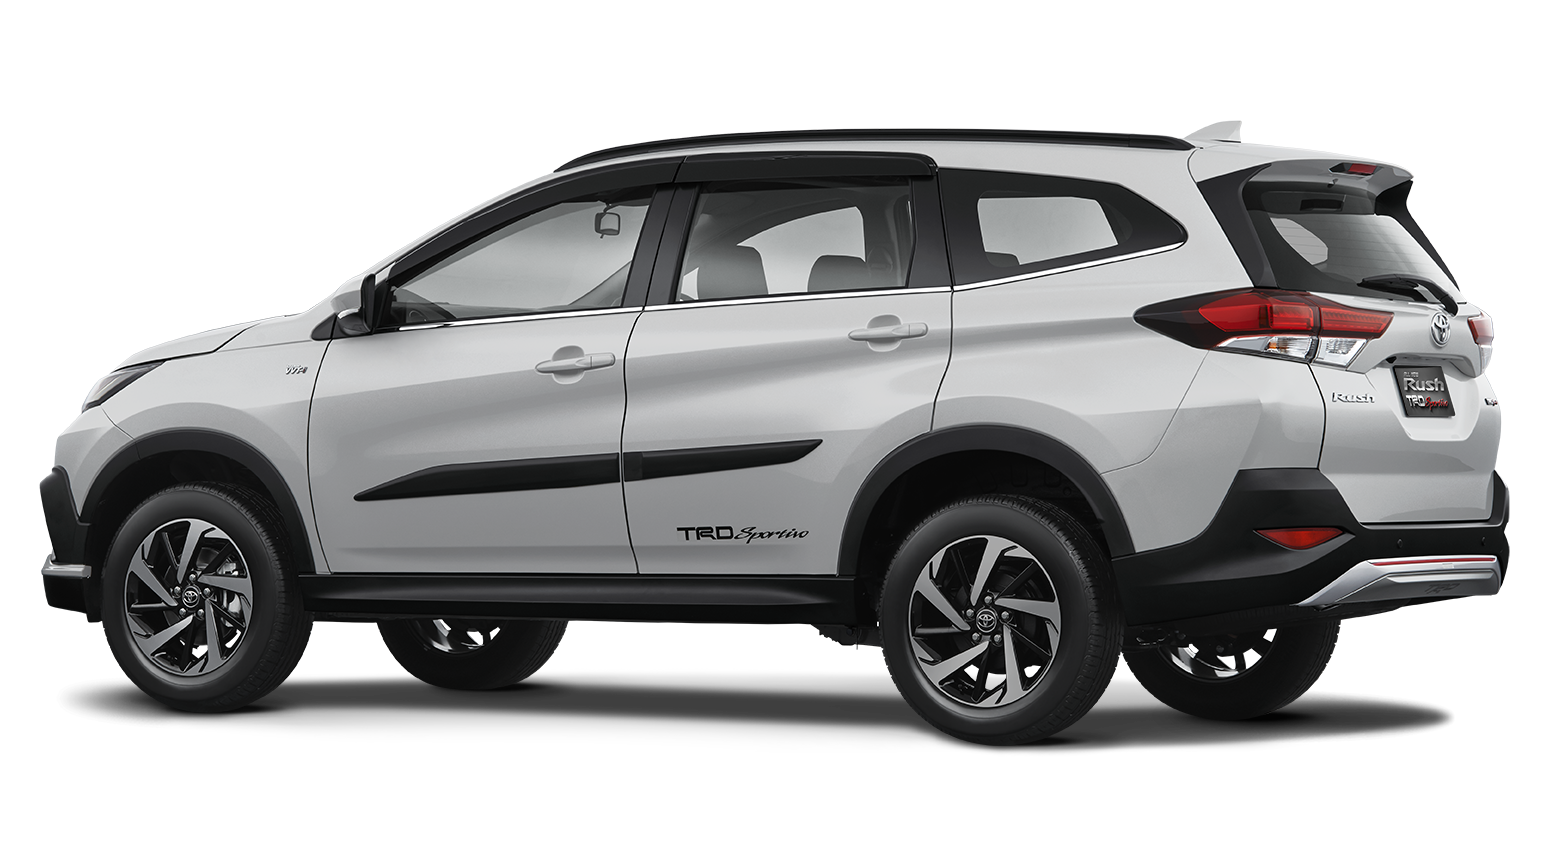 New 2018 Toyota Rush Suv Makes Debut In Indonesia Image 742832